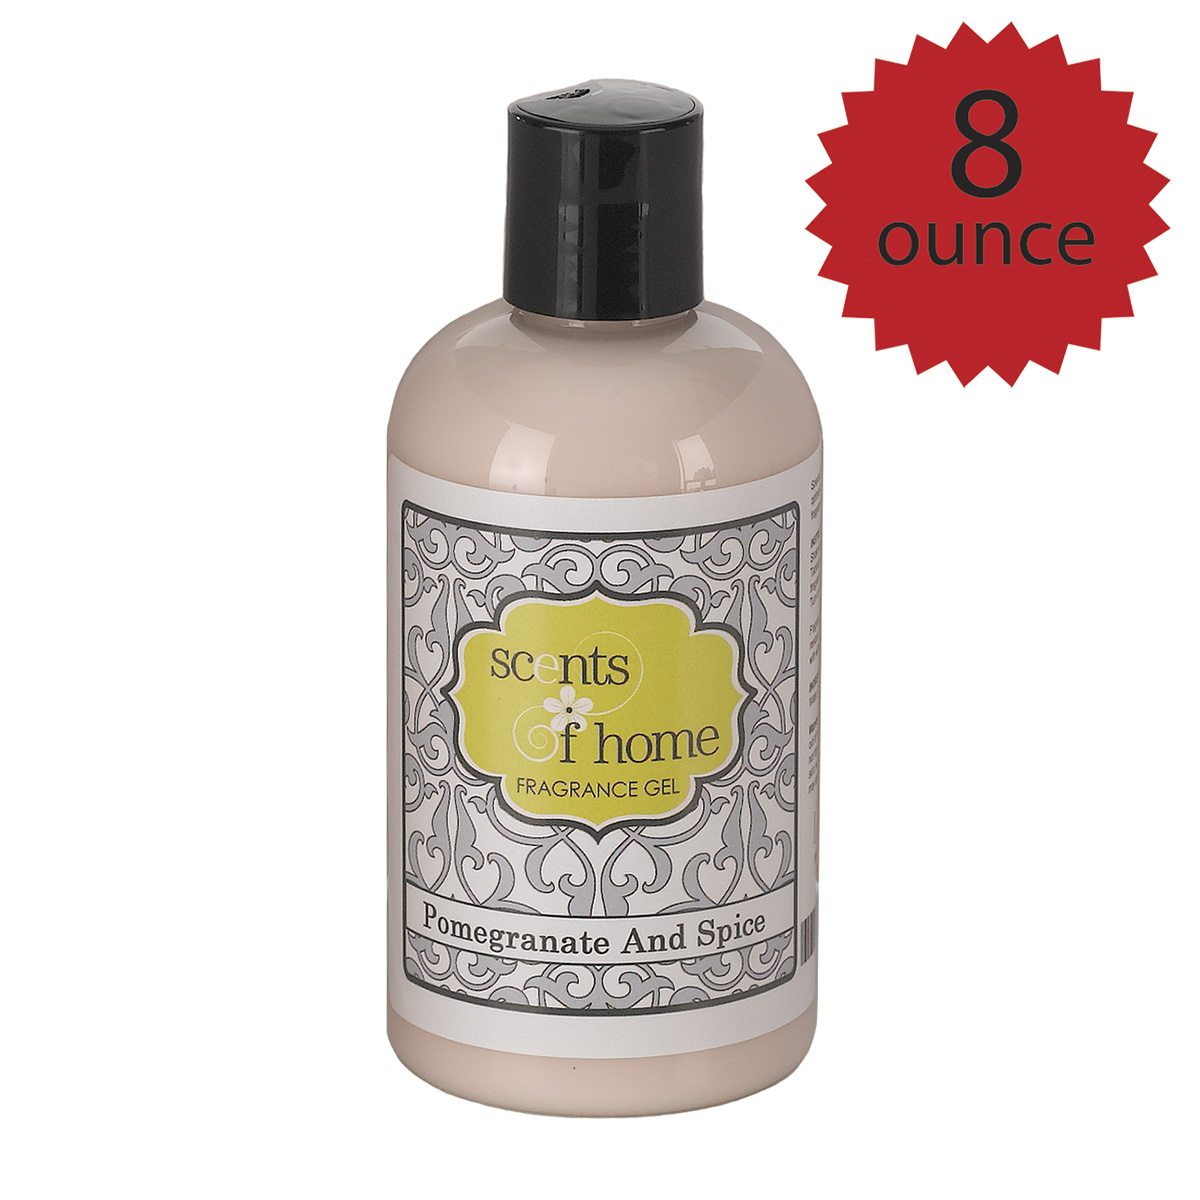 8 oz. Fragrance Gel - Pomegranate and Spice